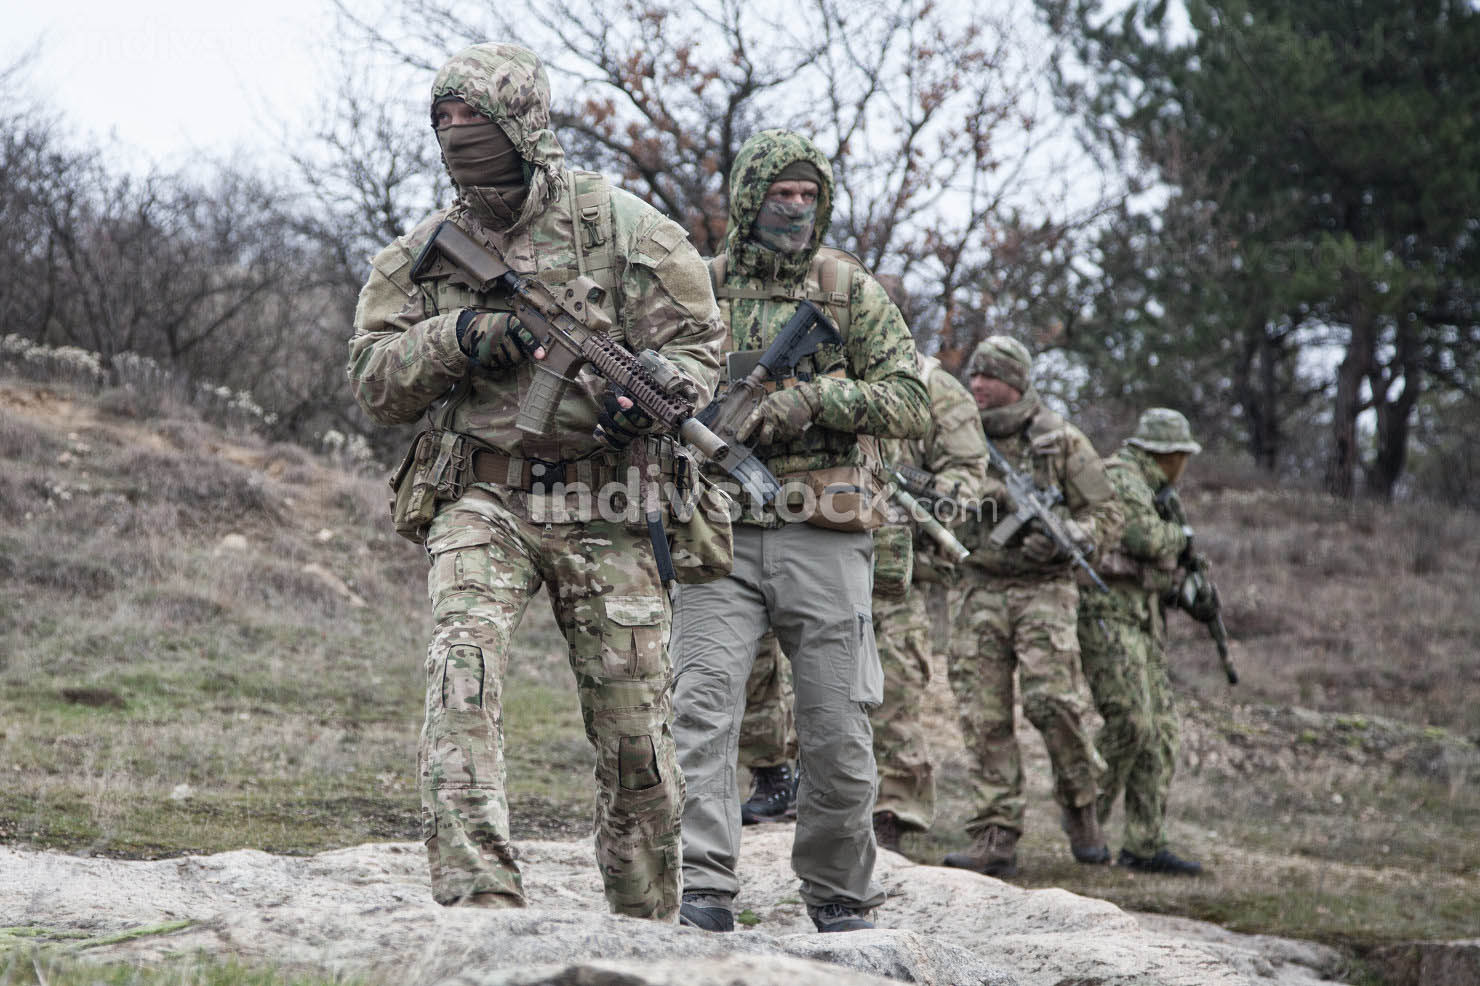 Military team, private military company mercenaries group in camouflage military uniform and mask, armed service rifles, walking in line behind commander, patrolling area in forest